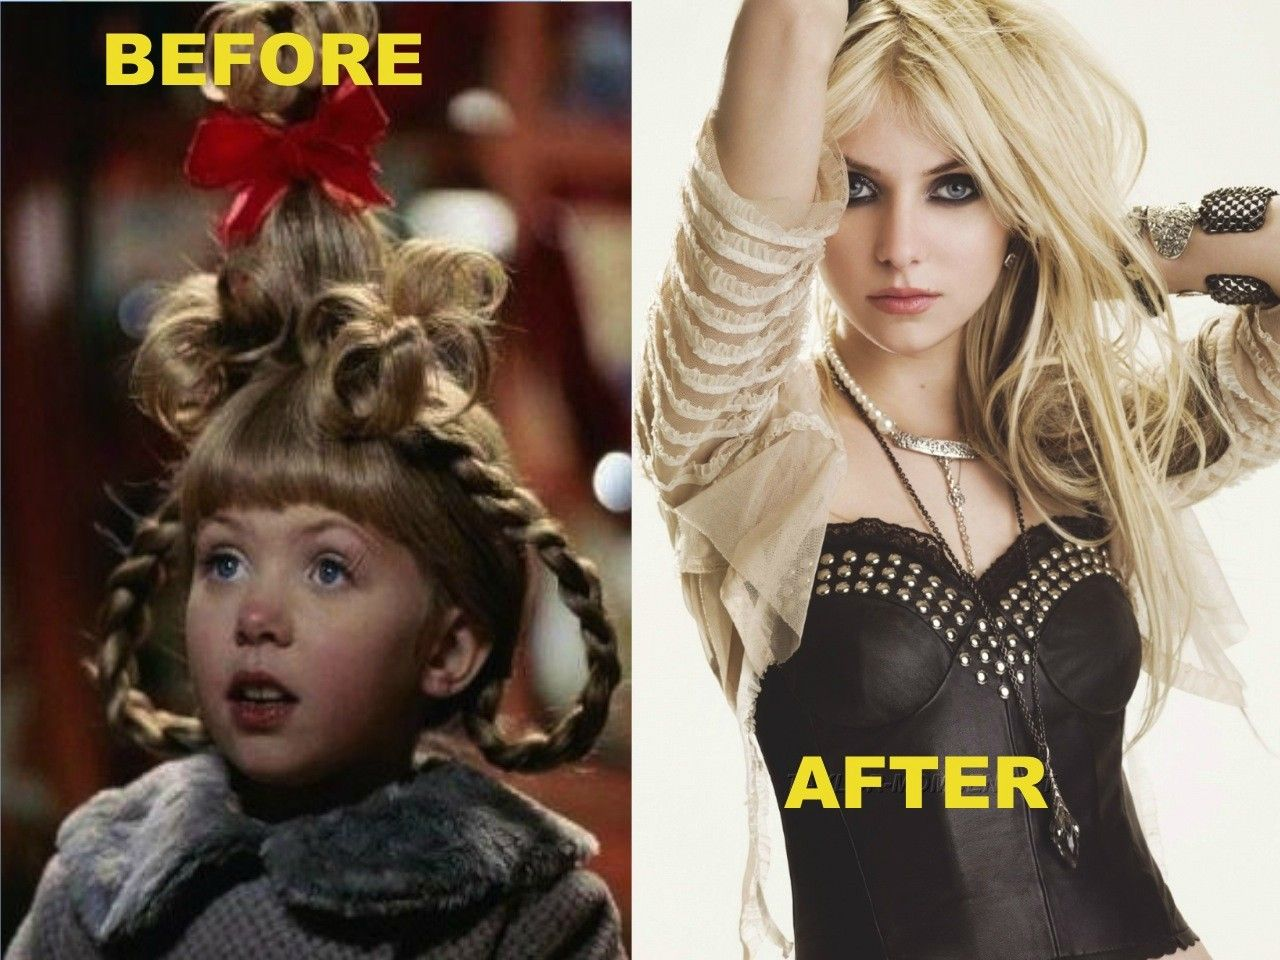 The Grinch Who Stole Christmas Cast.Taylor Momsen Before After Music Taylor Momsen Girl